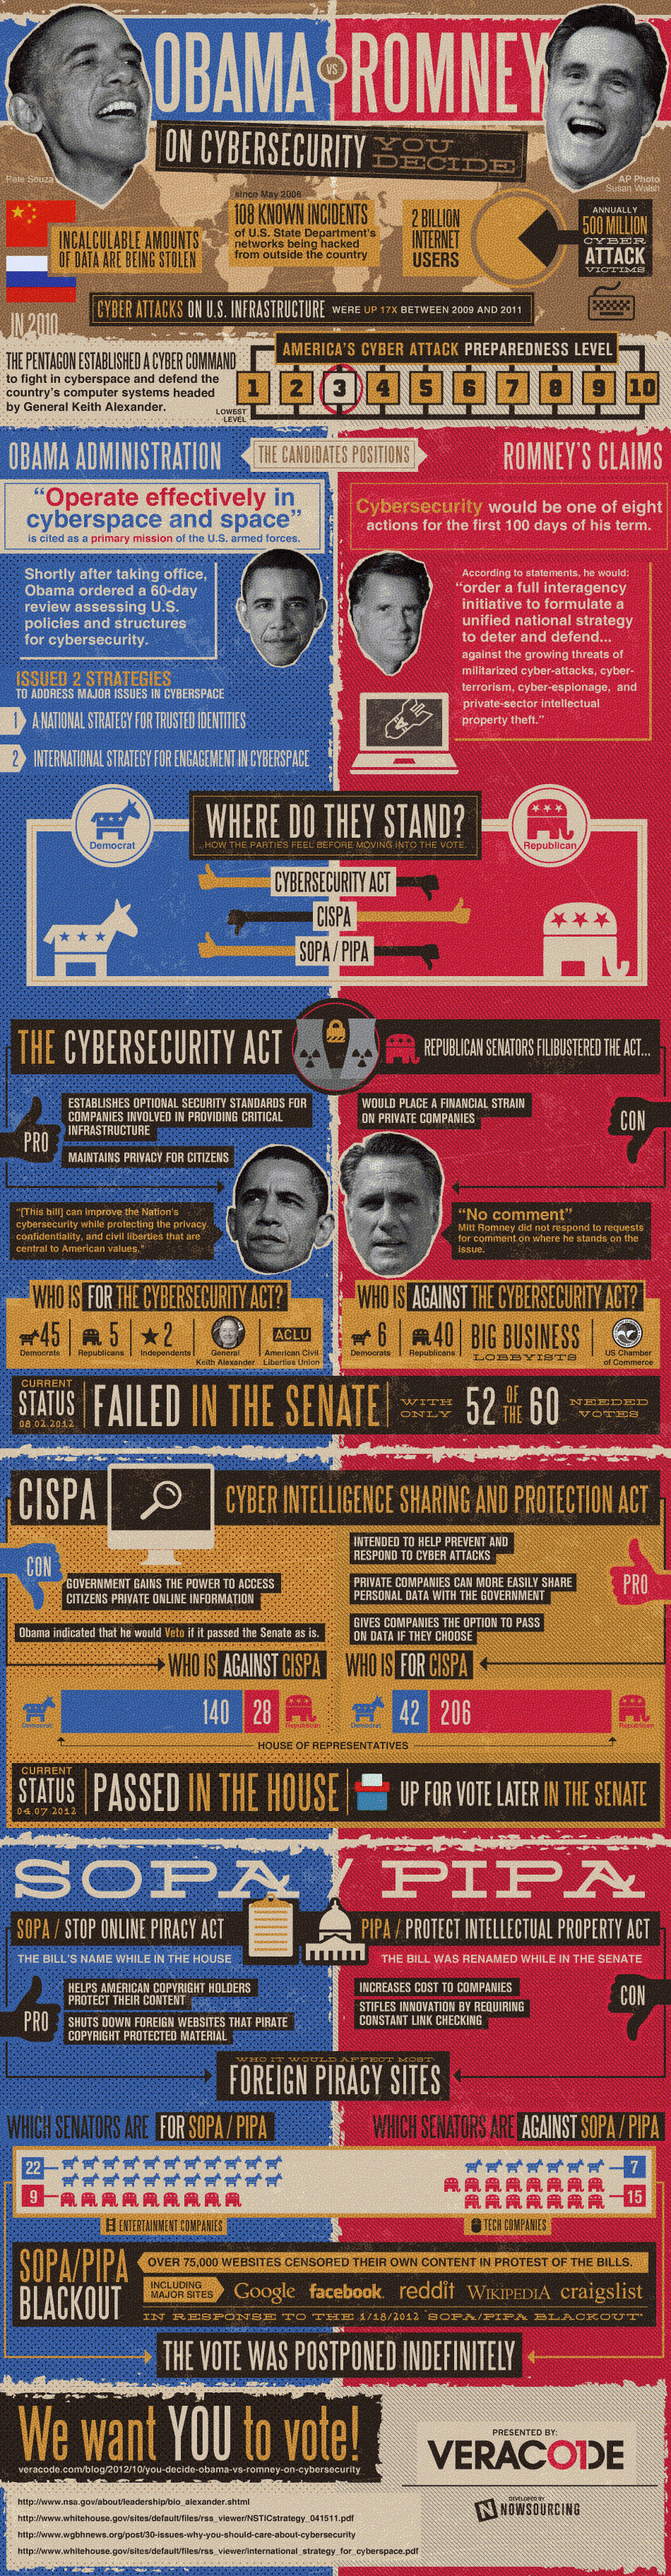 cybersecurity-obama-vs-romney-infographic